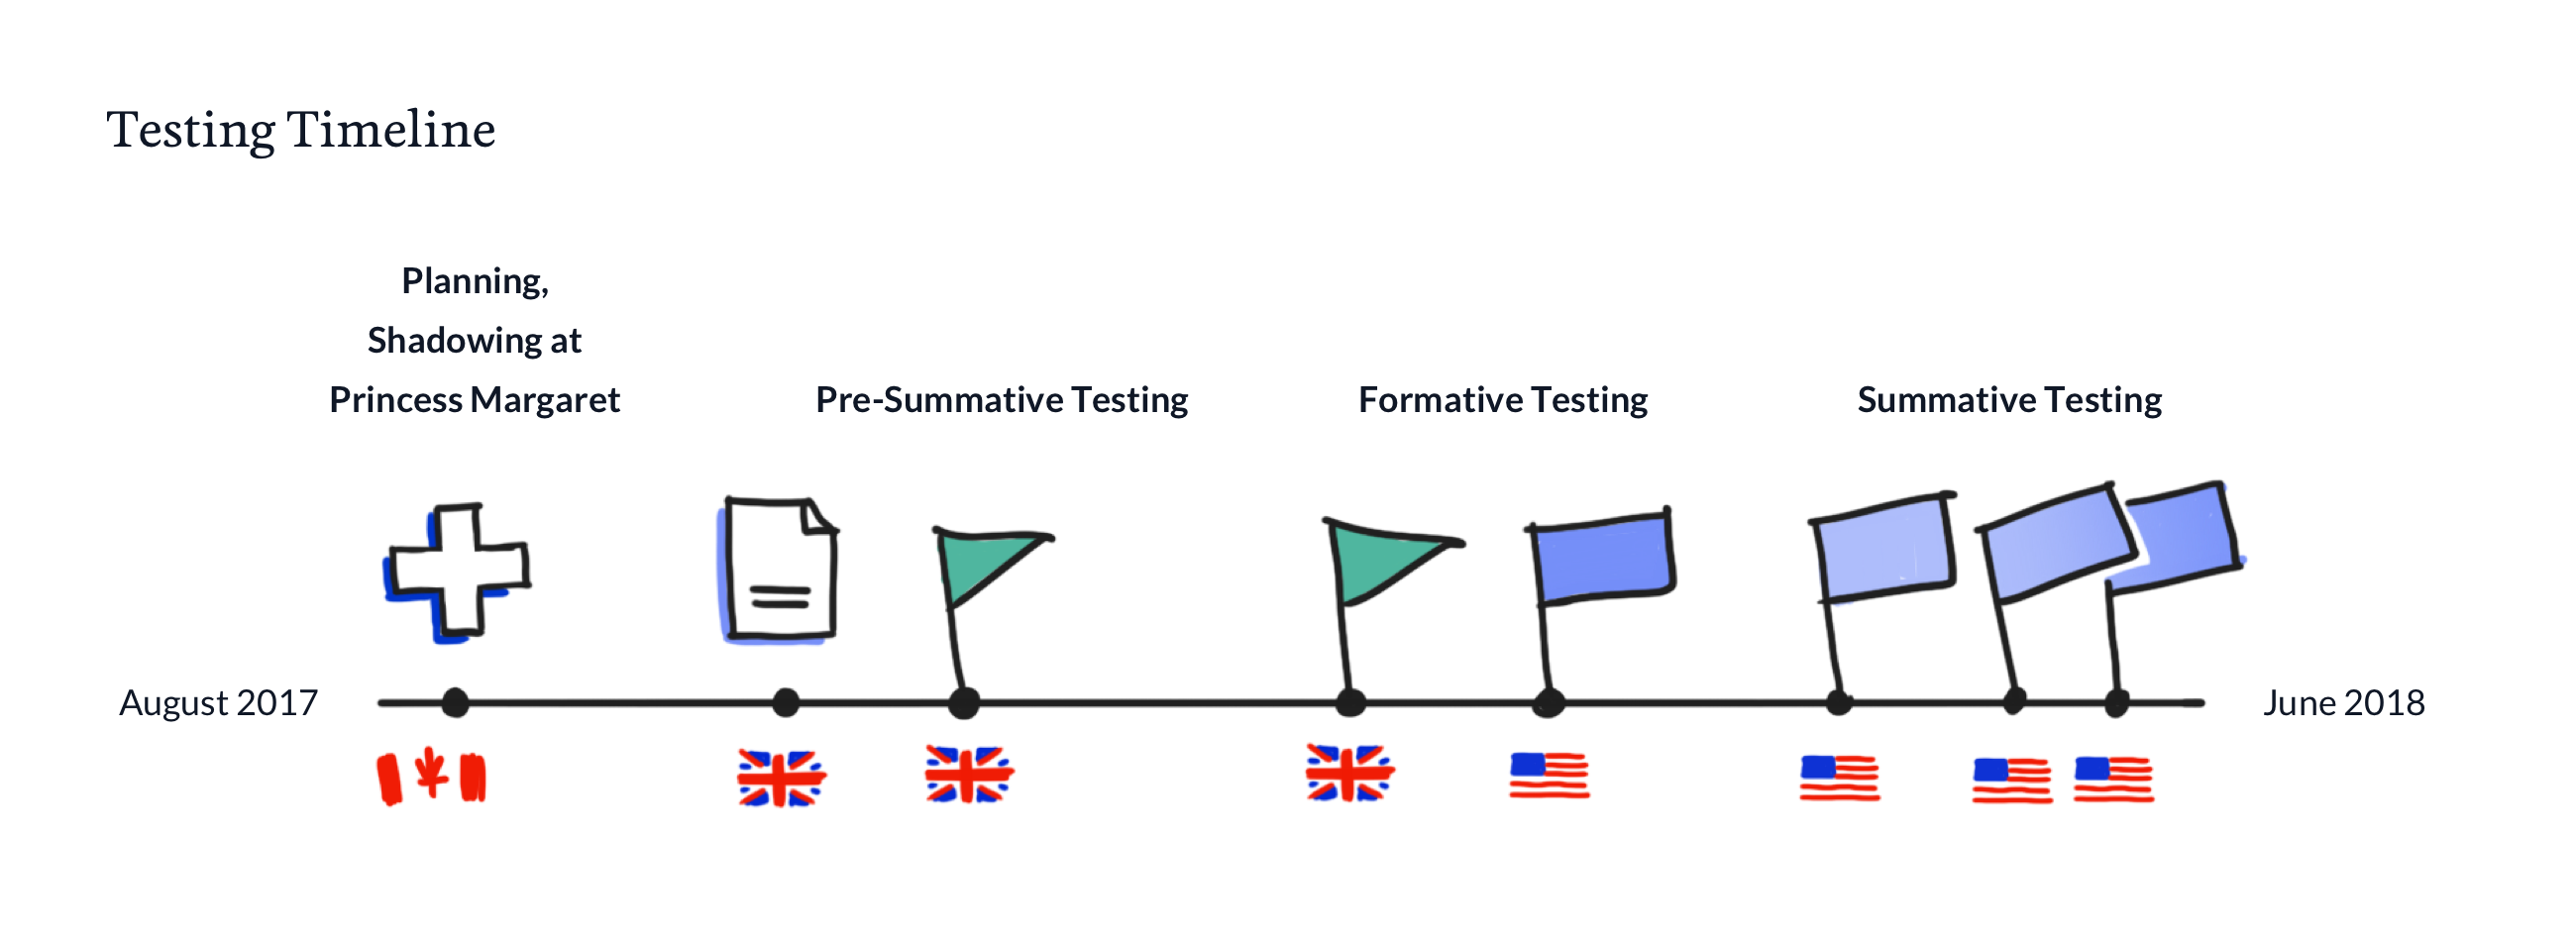 Timeline of test from August 2017 to June 2018